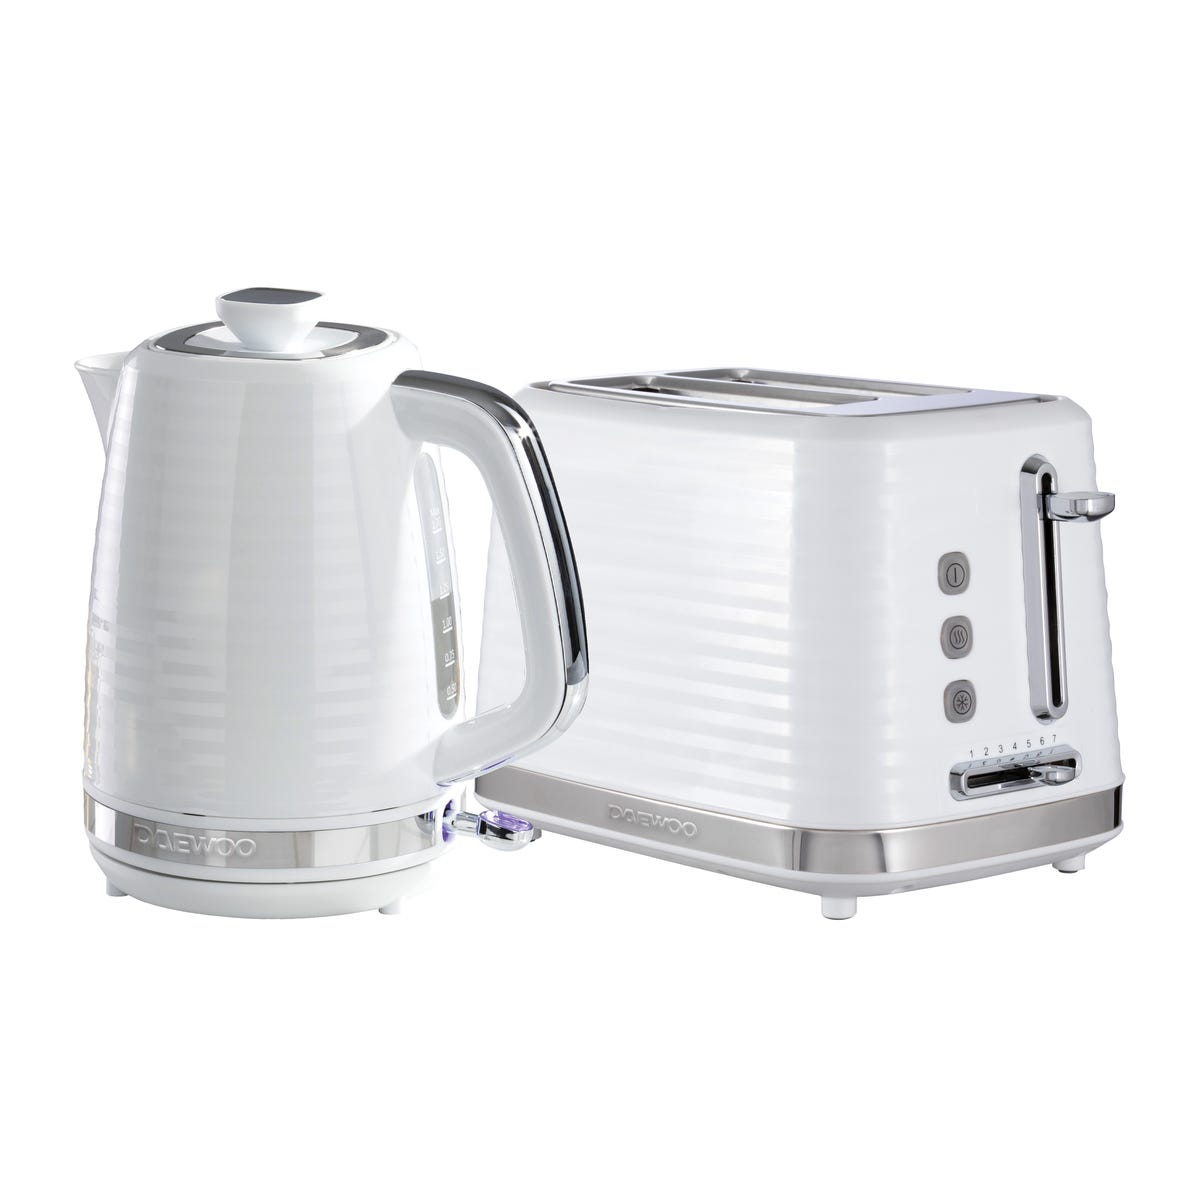 Daewoo SDA2369DS Hive 1.7L 3KW Textured Kettle and 2 Slice Toaster Set - White